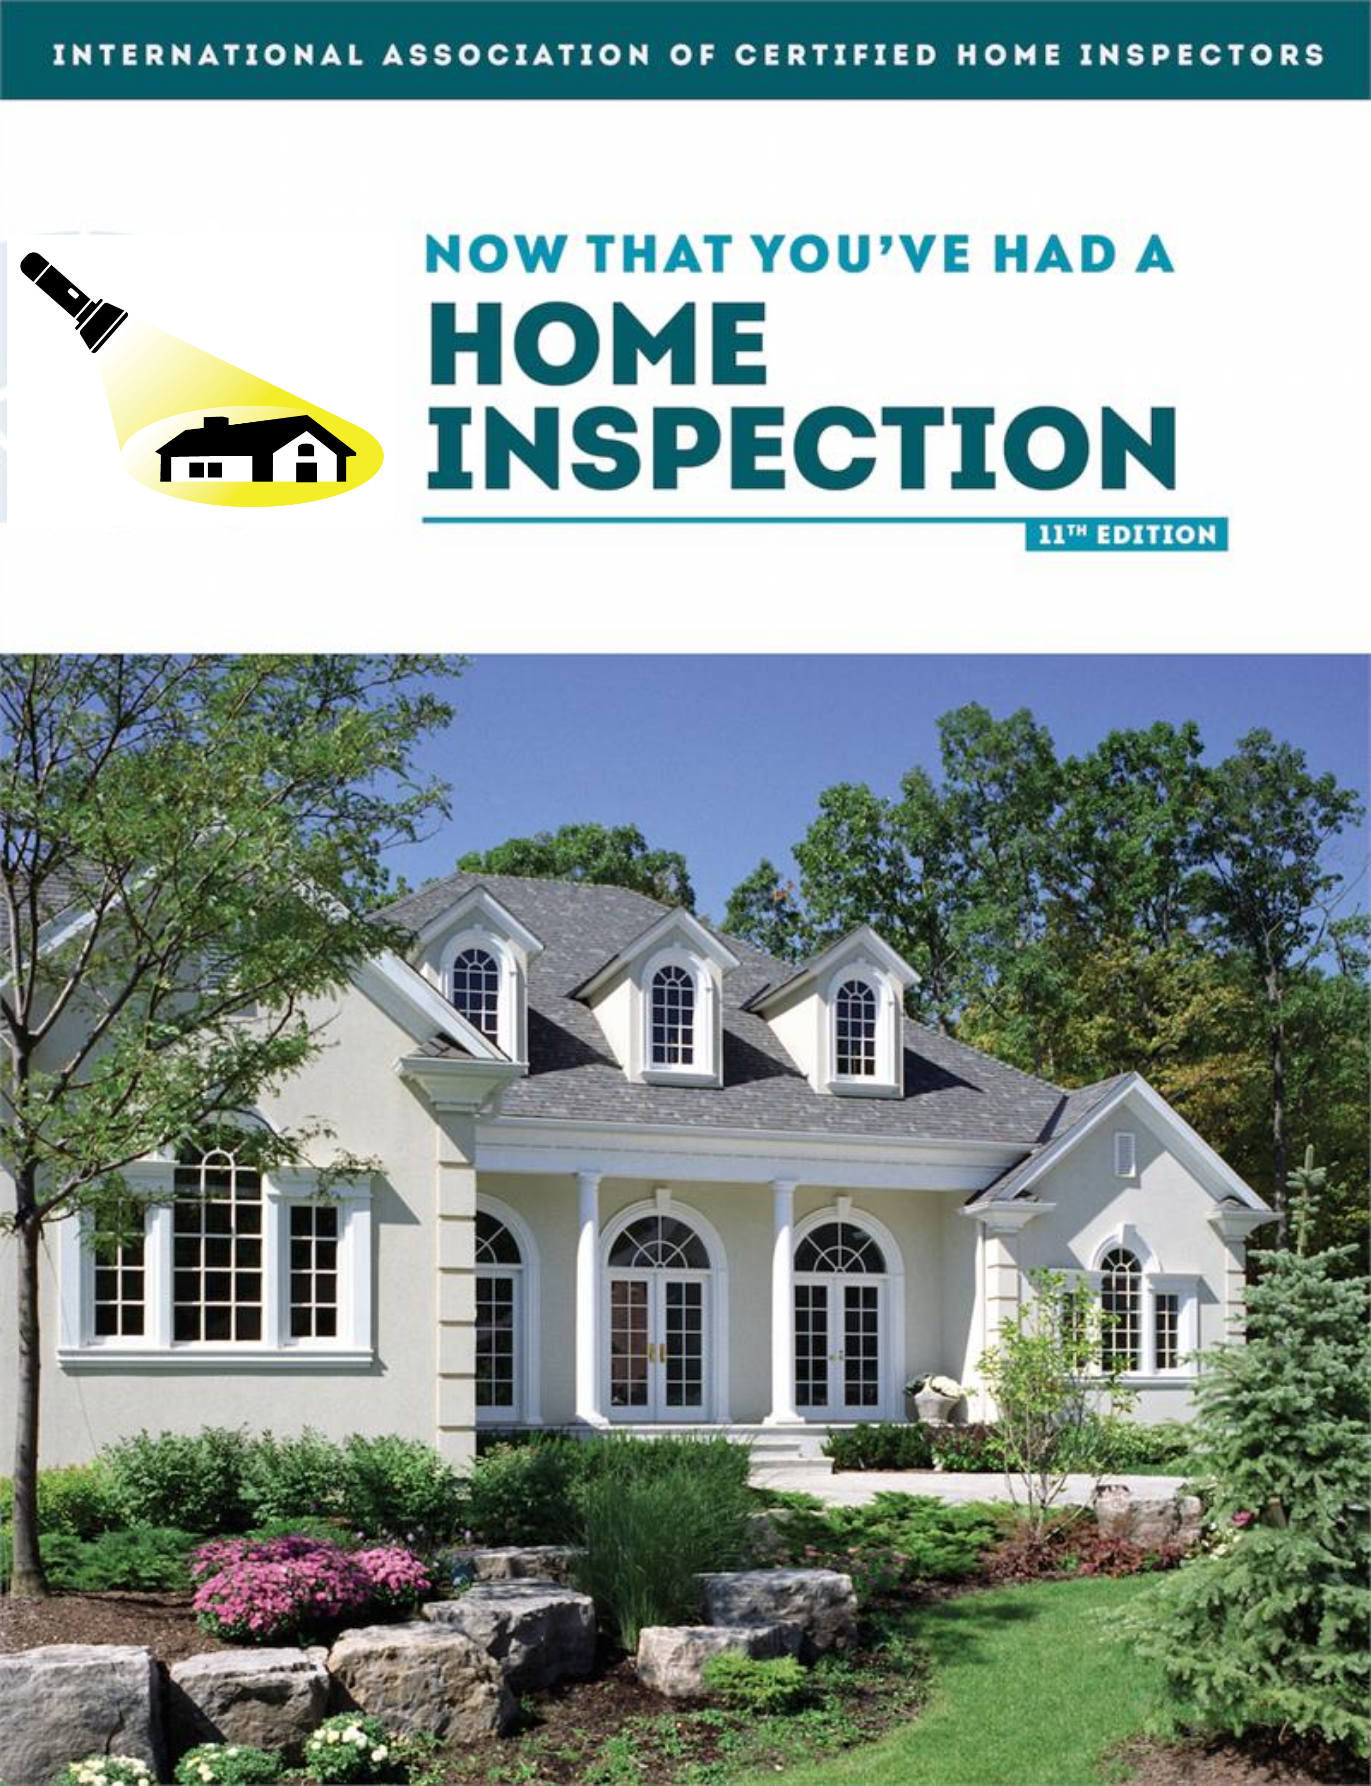 All home buyers receive a free Home Maintenance Book to care for their new home. Available in both English and Spanish.   https://www.youtube.com/watch?v=s1F2iJadc1I